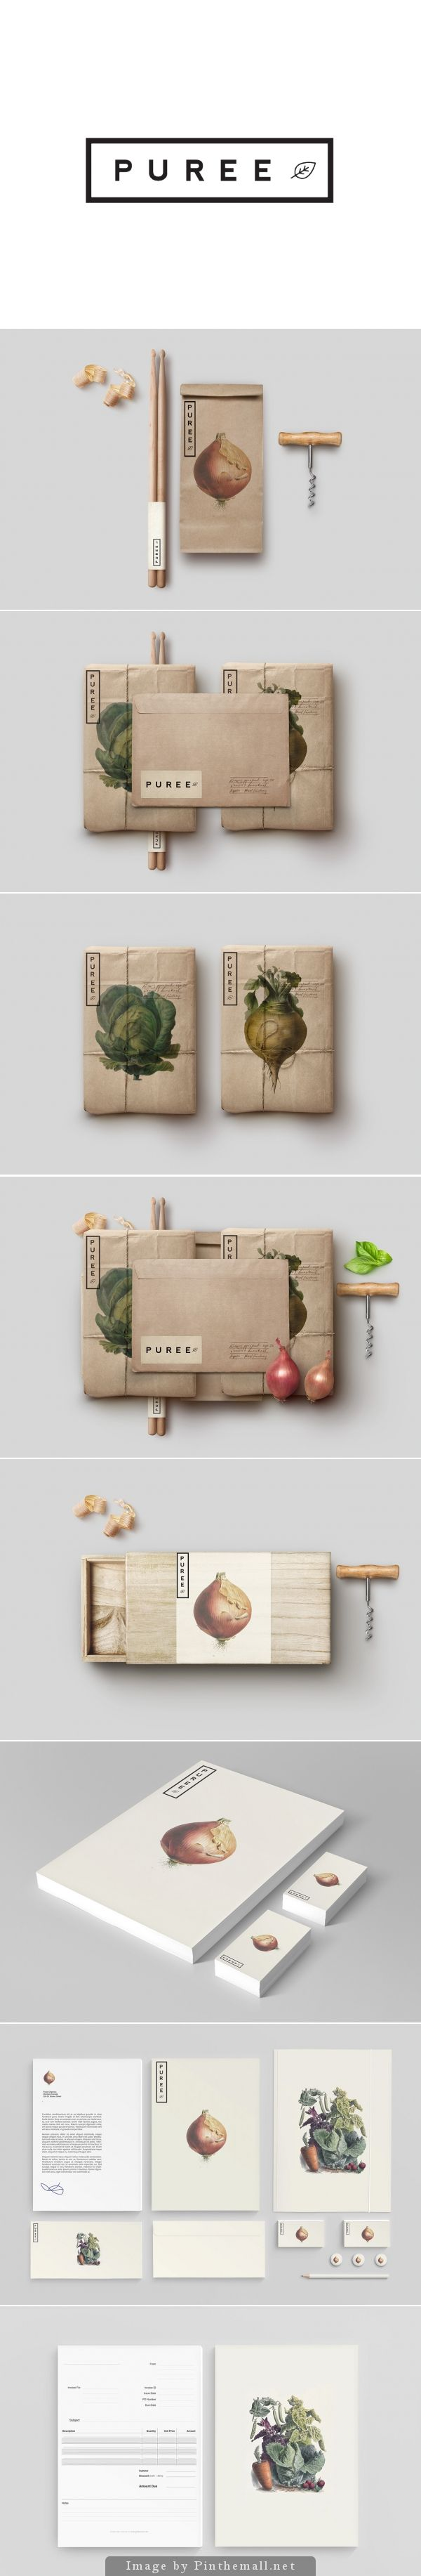 Puree Organics by Studioahamed - We can't resist antique-style botanical illustrations in branding